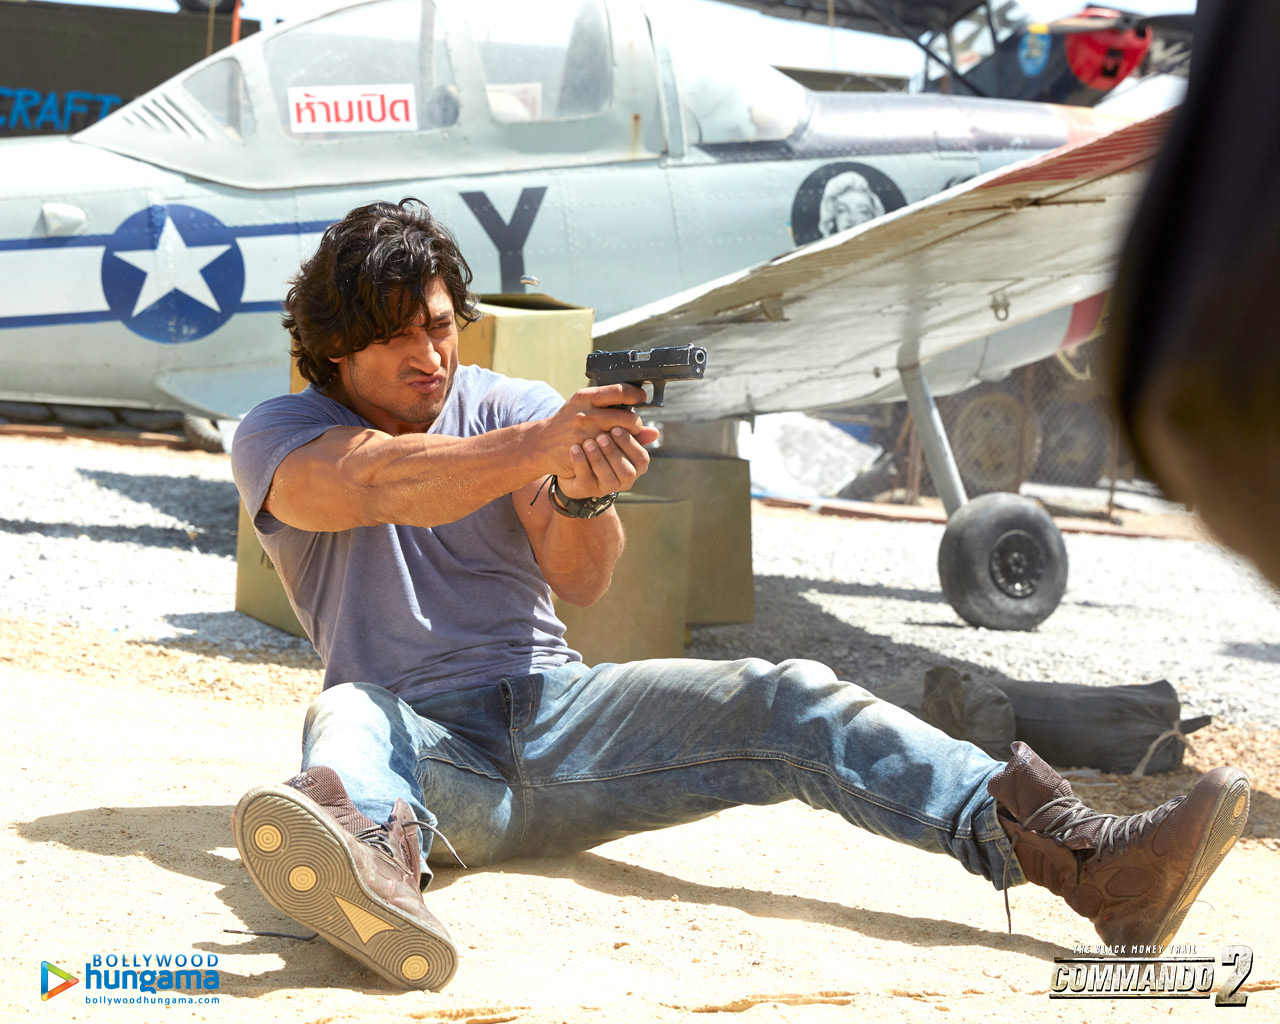 Commando 2 Wallpaper: Commando-2-3-8 - Bollywood